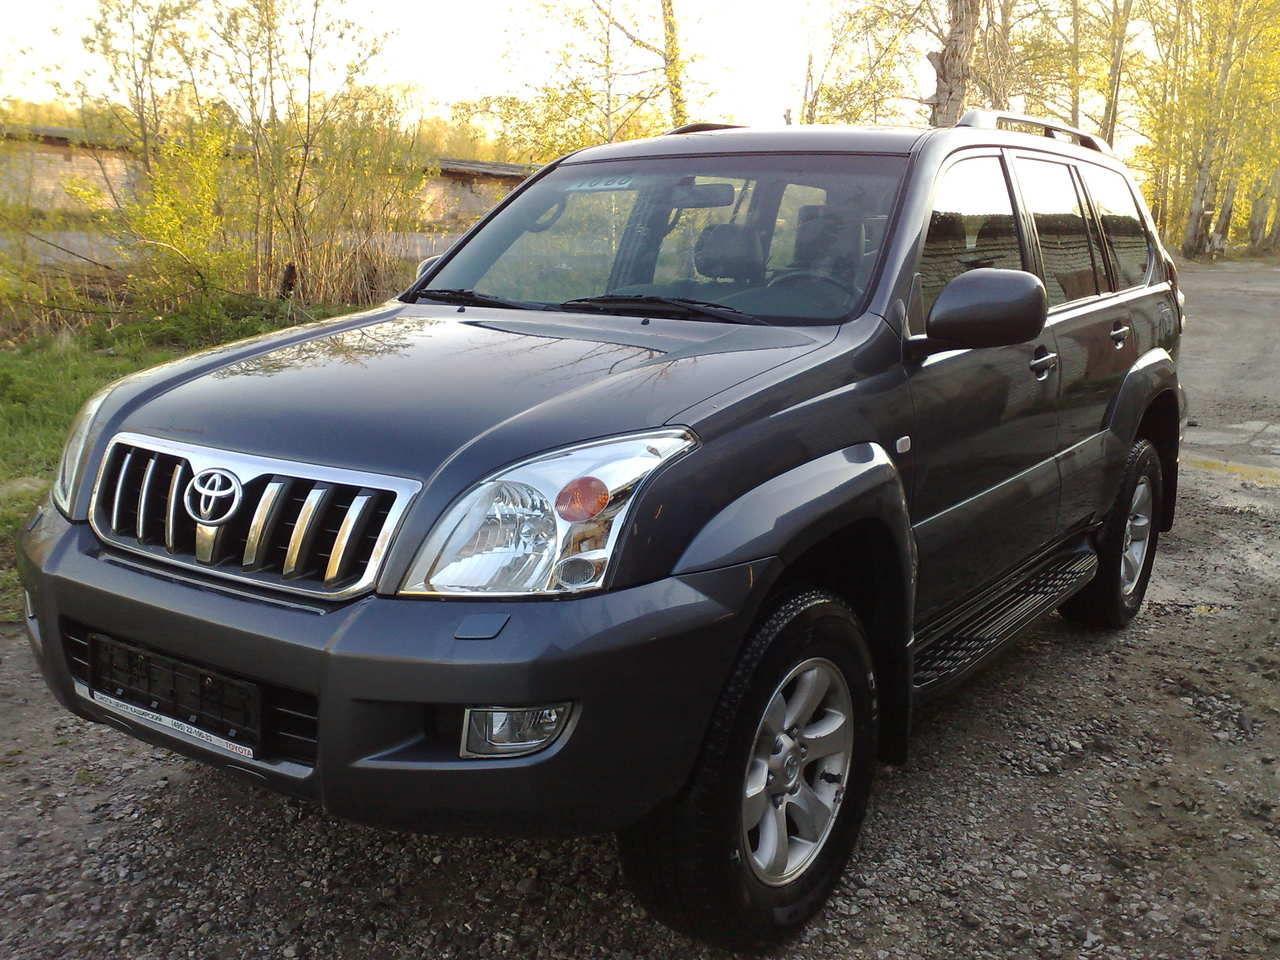 used 2004 toyota land cruiser prado photos 4000cc. Black Bedroom Furniture Sets. Home Design Ideas